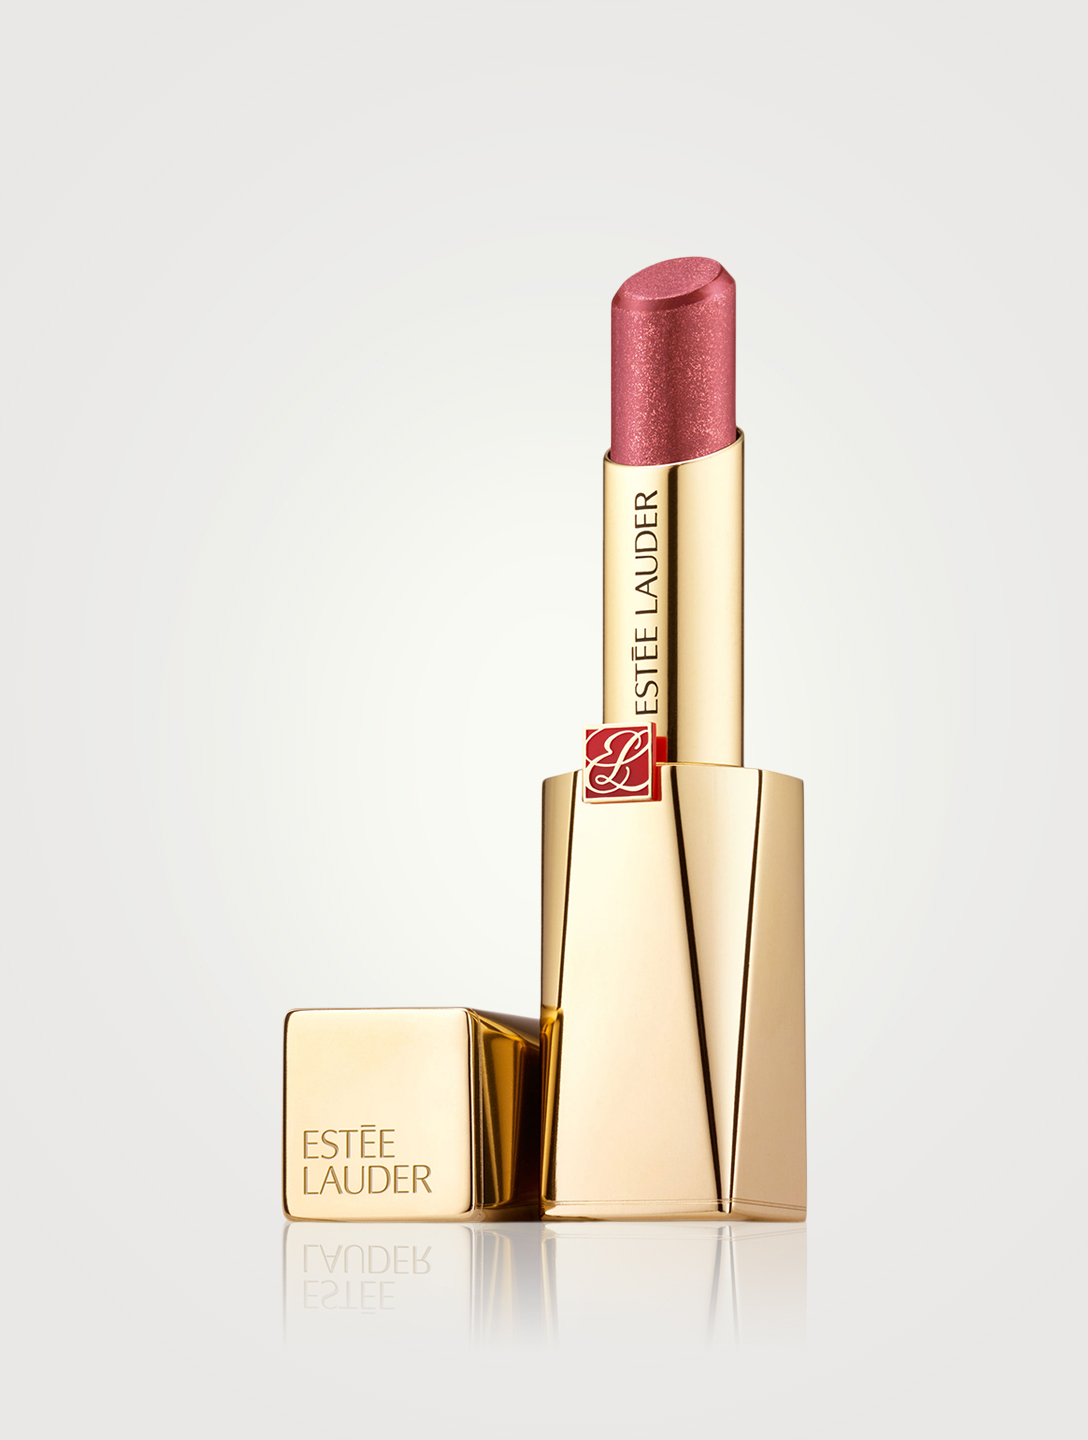 ESTÉE LAUDER Pure Colour Desire Rouge Excess Lipstick Beauty Pink